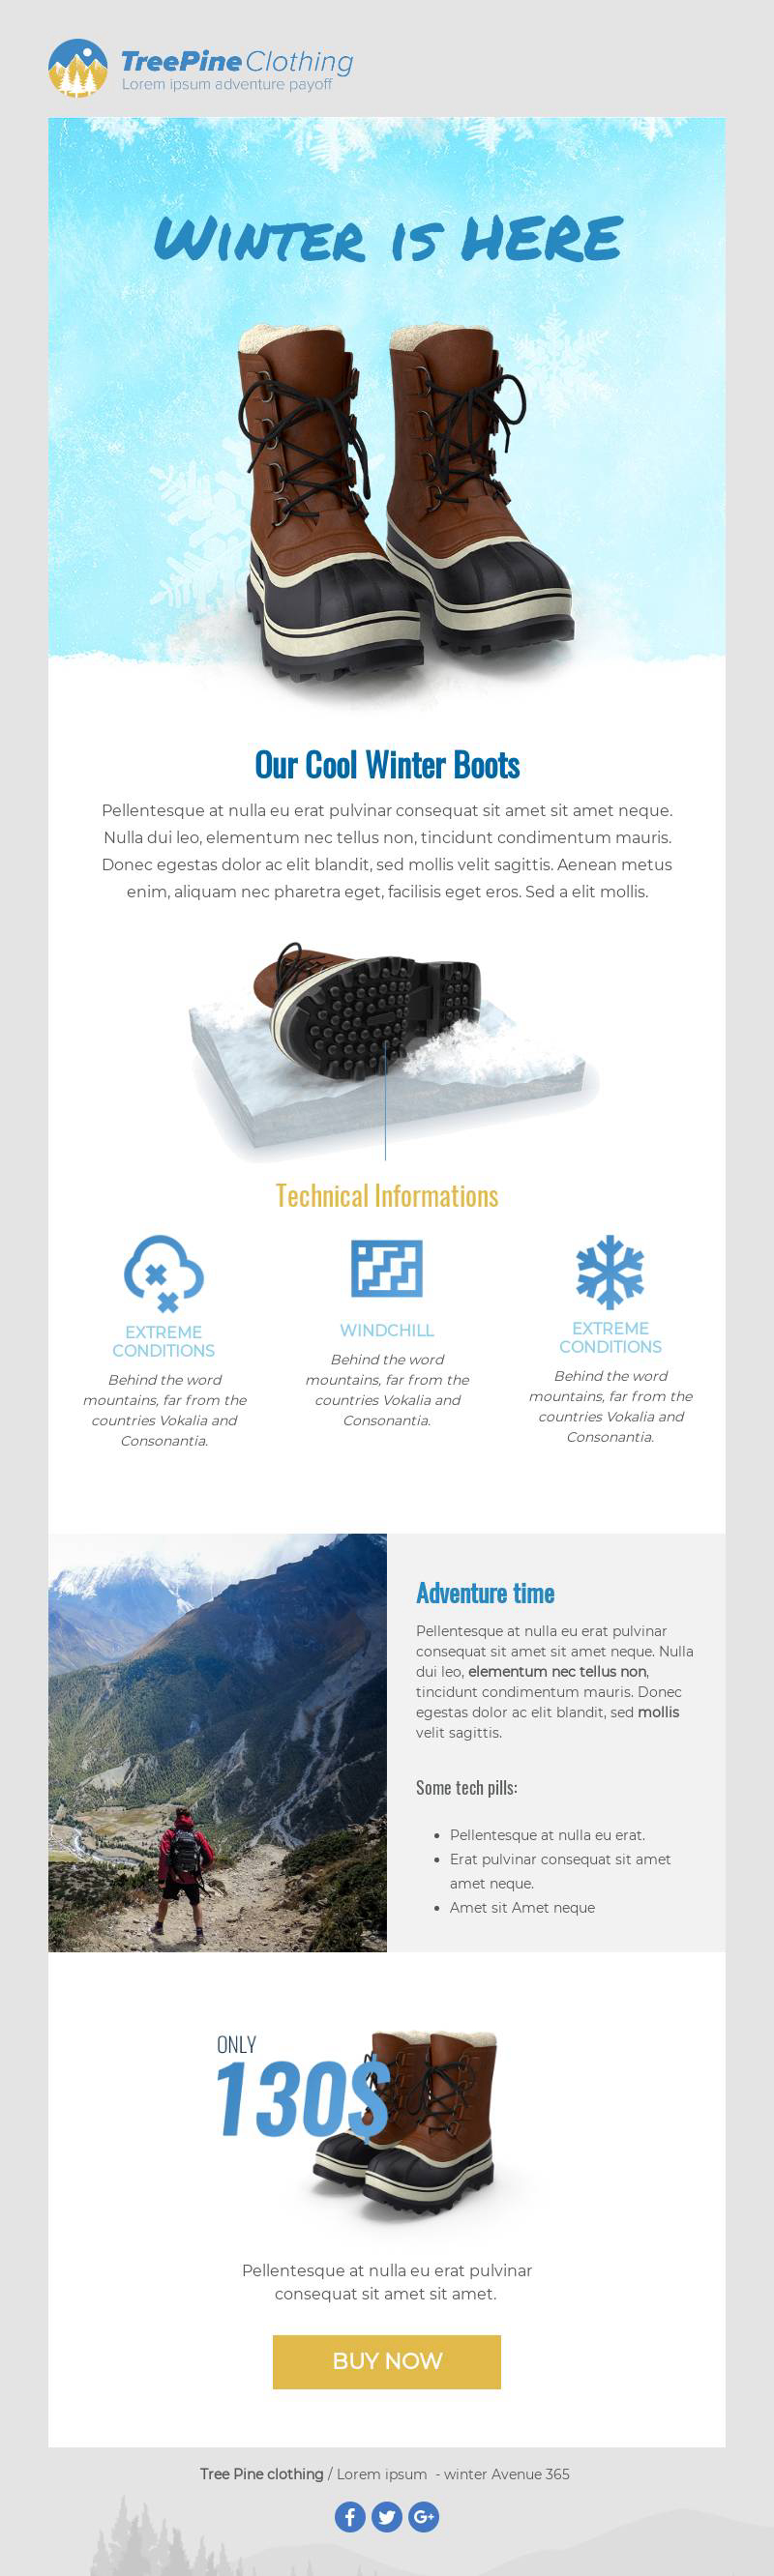 Winter Email Marketing Template from BEE